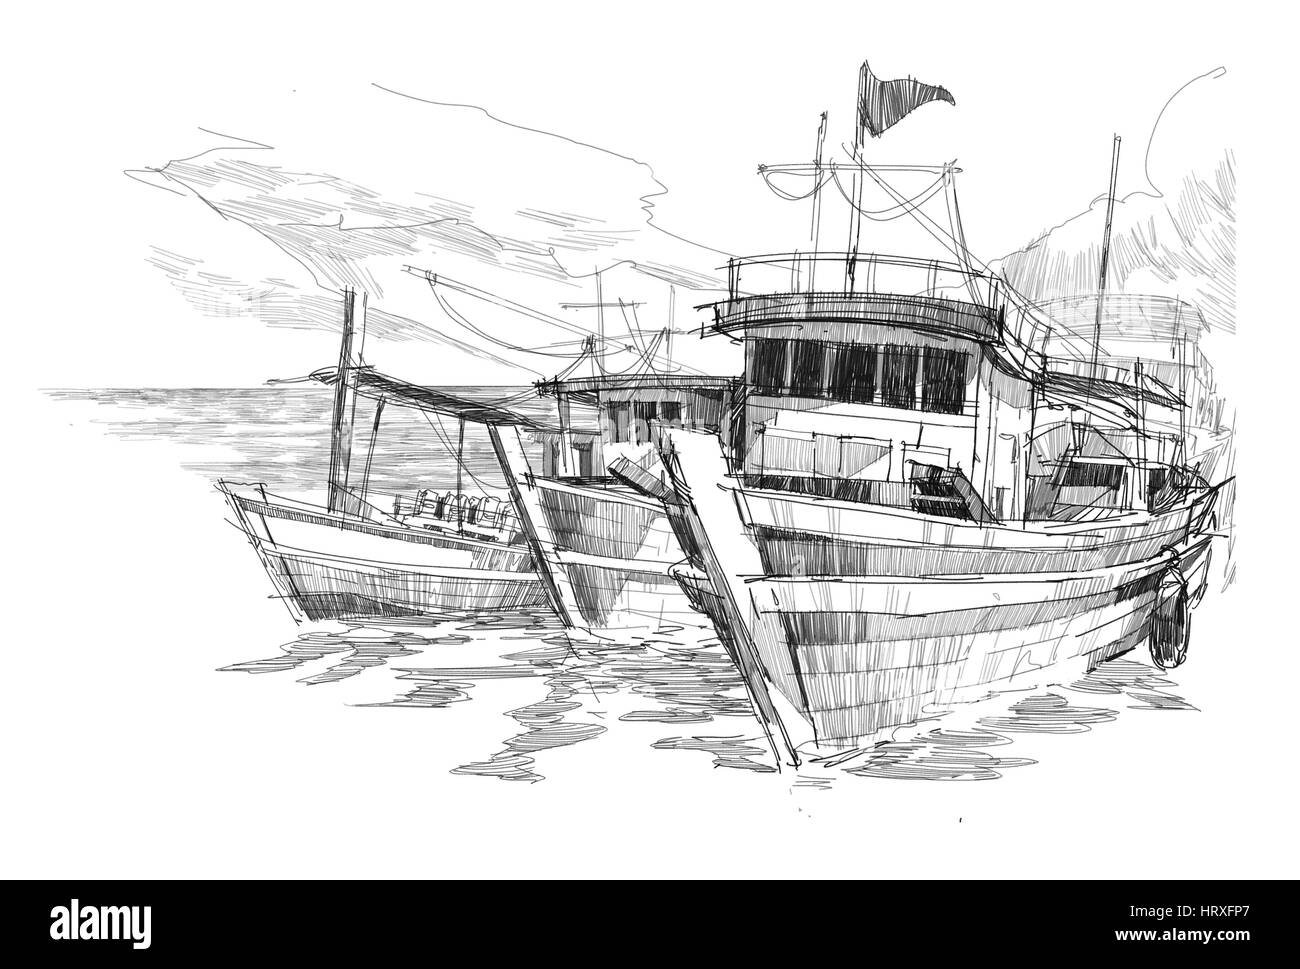 Pencil Sketch Boat High Resolution Stock Photography And Images Alamy